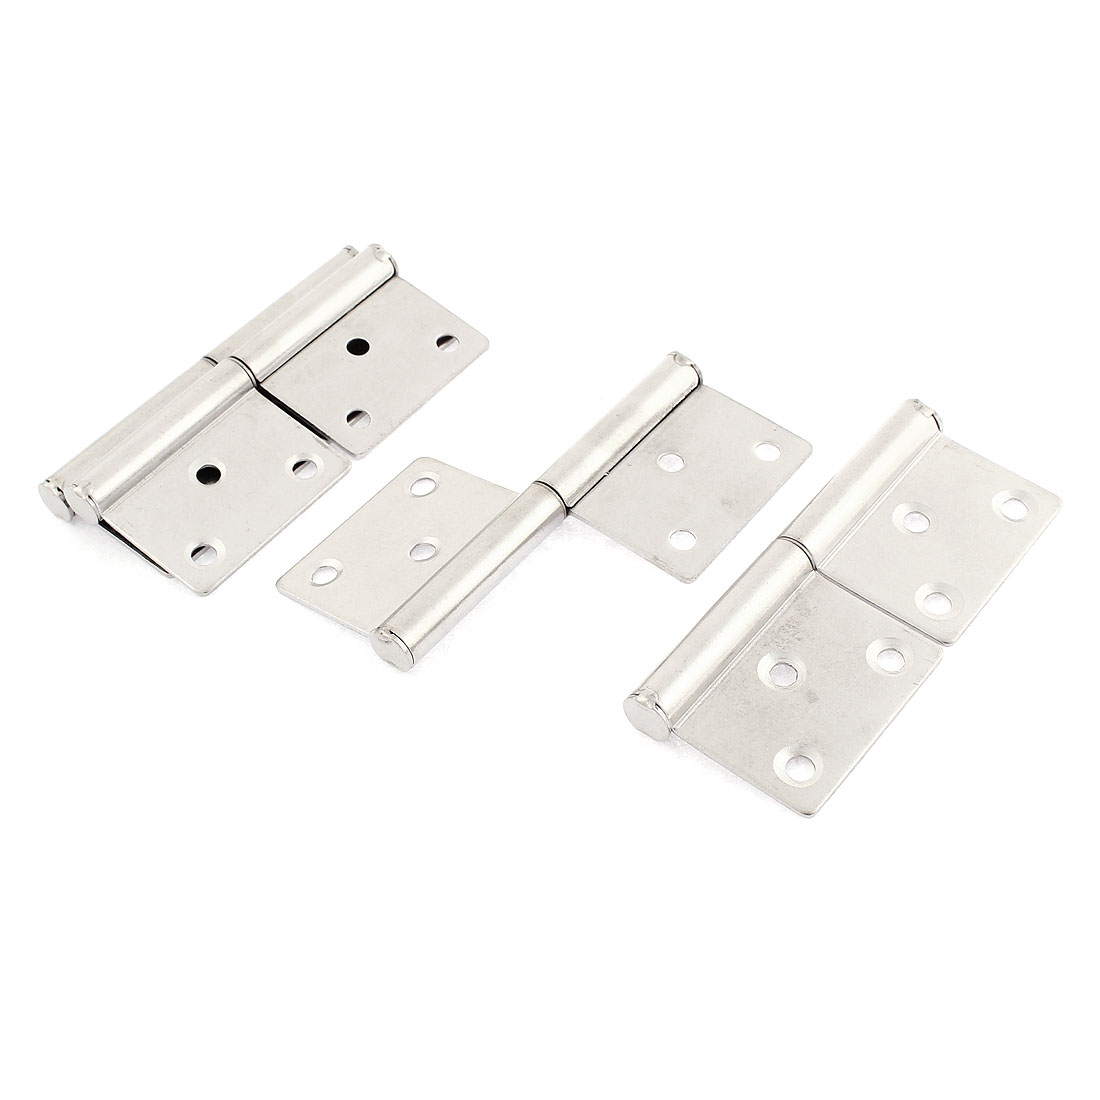 Cupboard Door 360 Degree Rotating Flag Hinges Silver Tone 100mm Long 4 Pcs